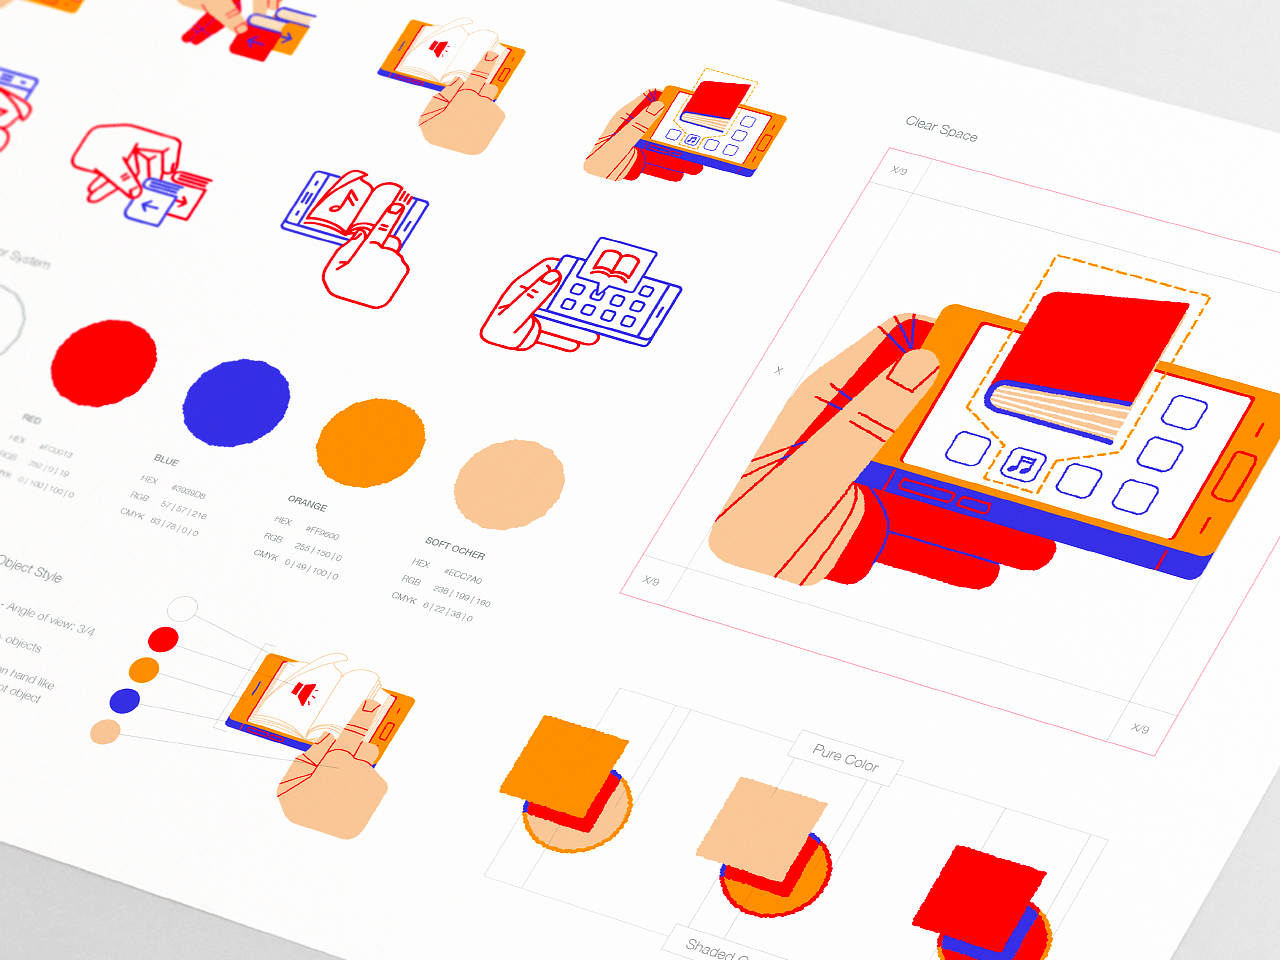 Pin By G M On Illustration Style Guide Design Style Guides Design